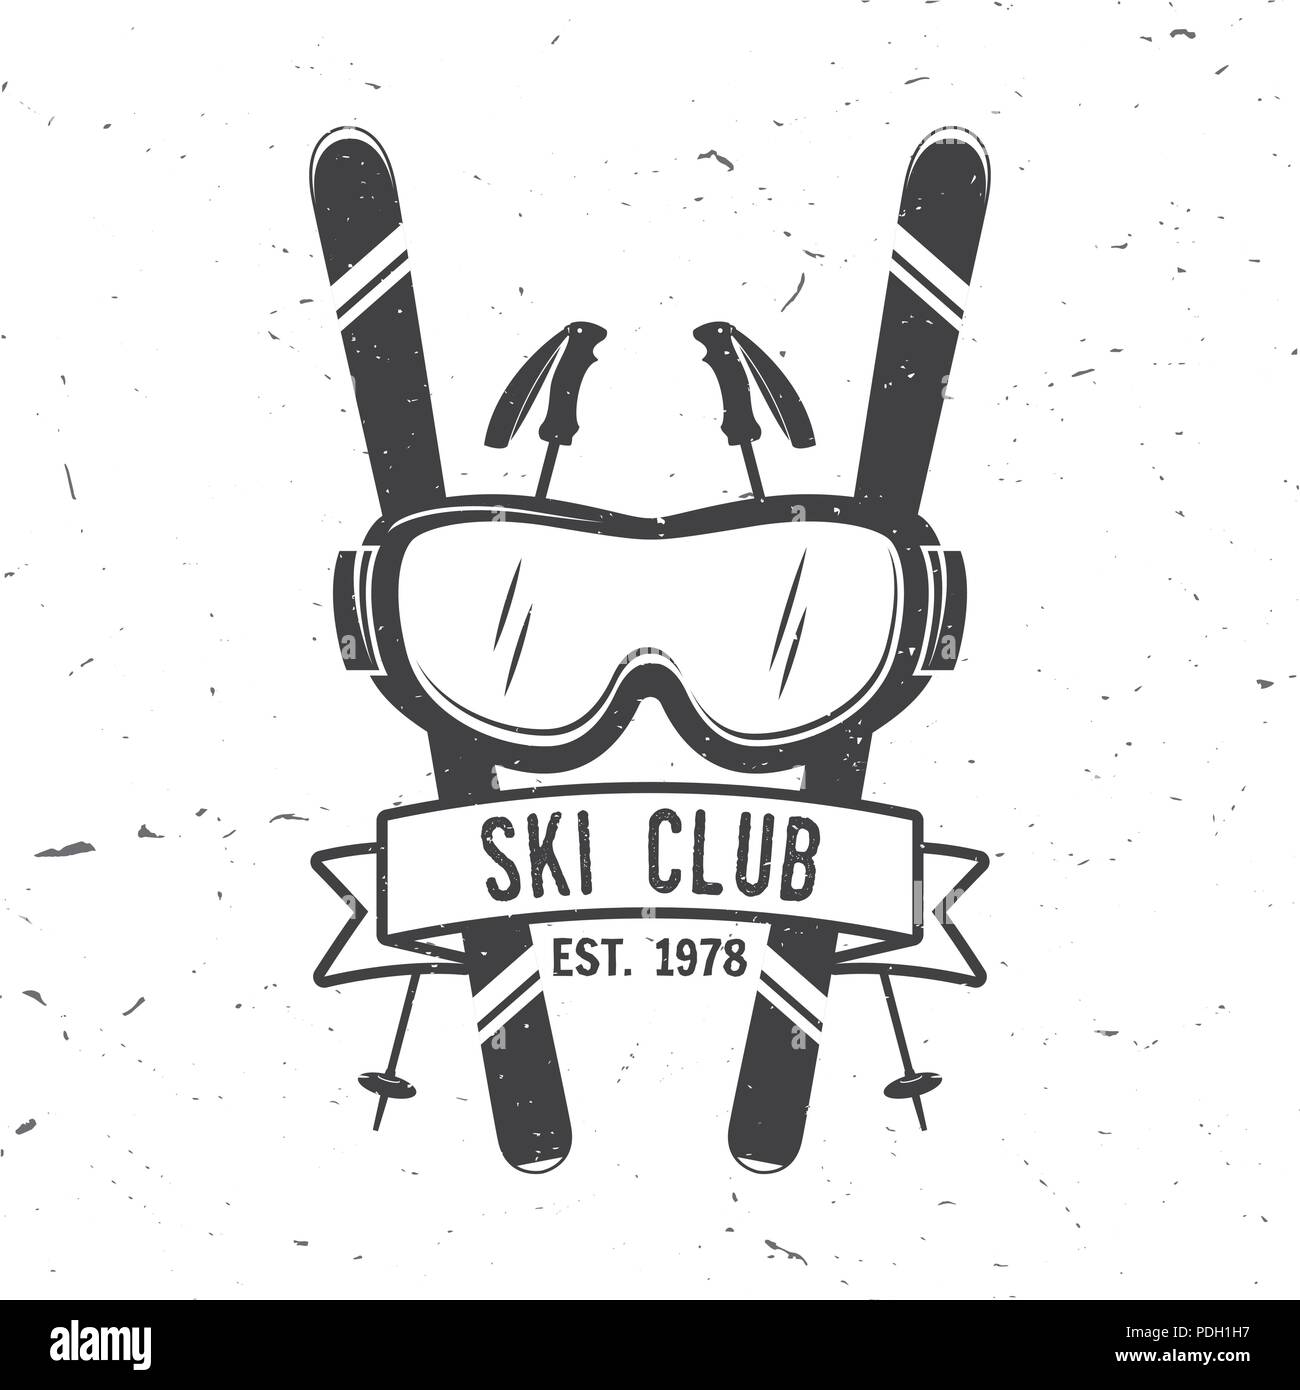 Ski club concept. Vector ski club retro badge. Concept for shirt, print, seal or stamp. Skis, mountain, ribbon and goggles. Typography design- stock v - Stock Image